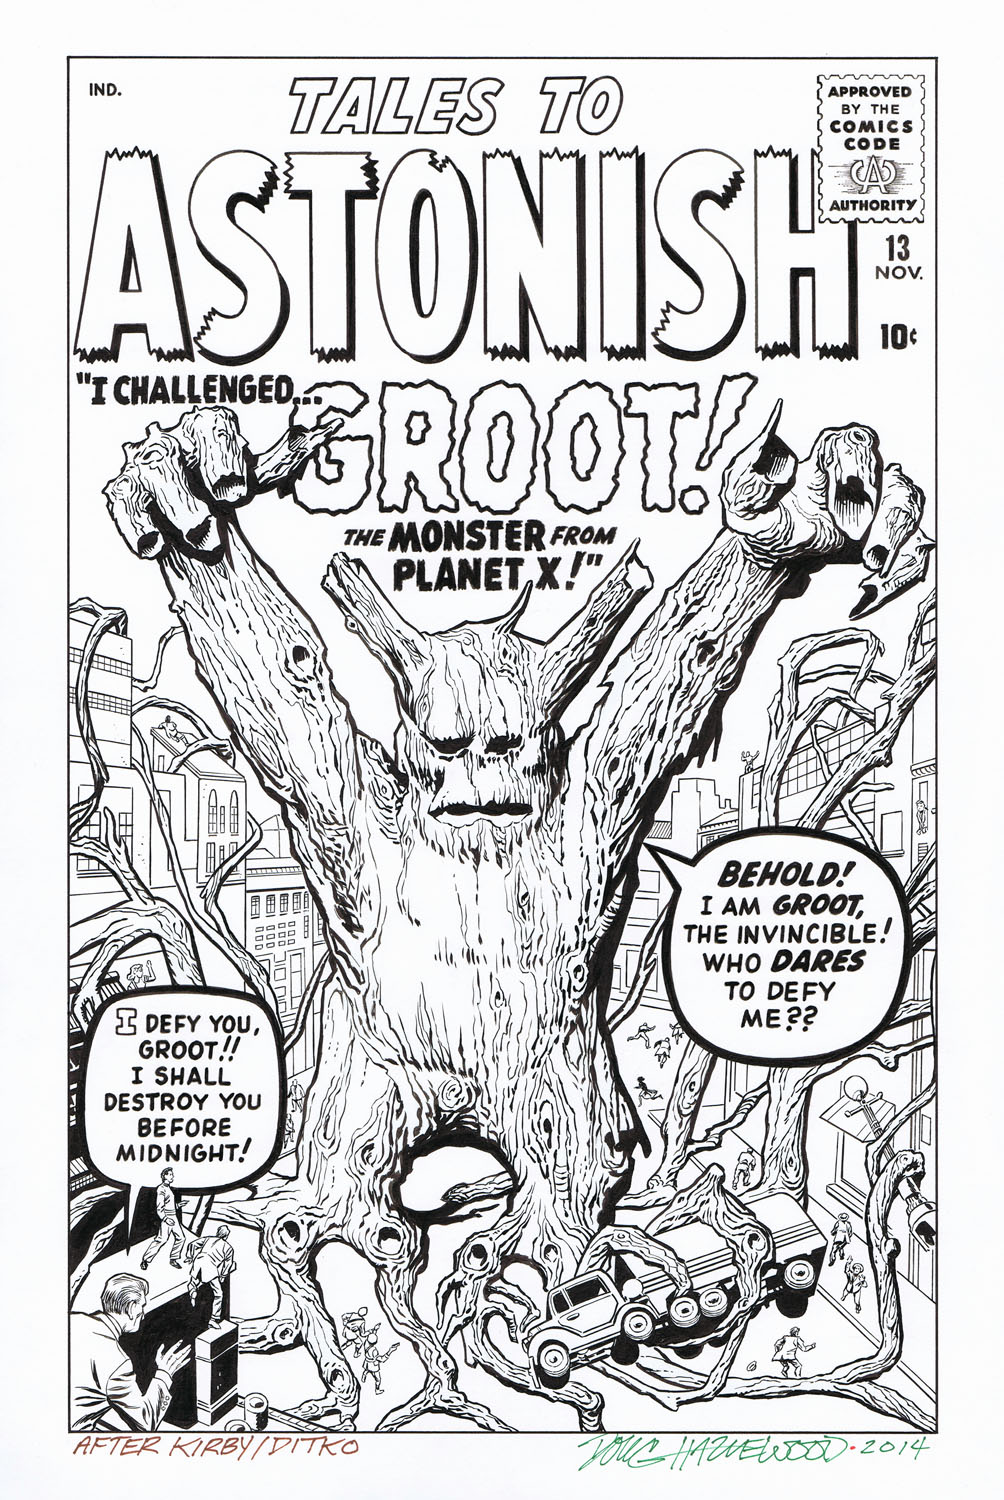 TALES TO ASTONISH #13 Cover Recreation 1st GROOT! by DRHazlewood